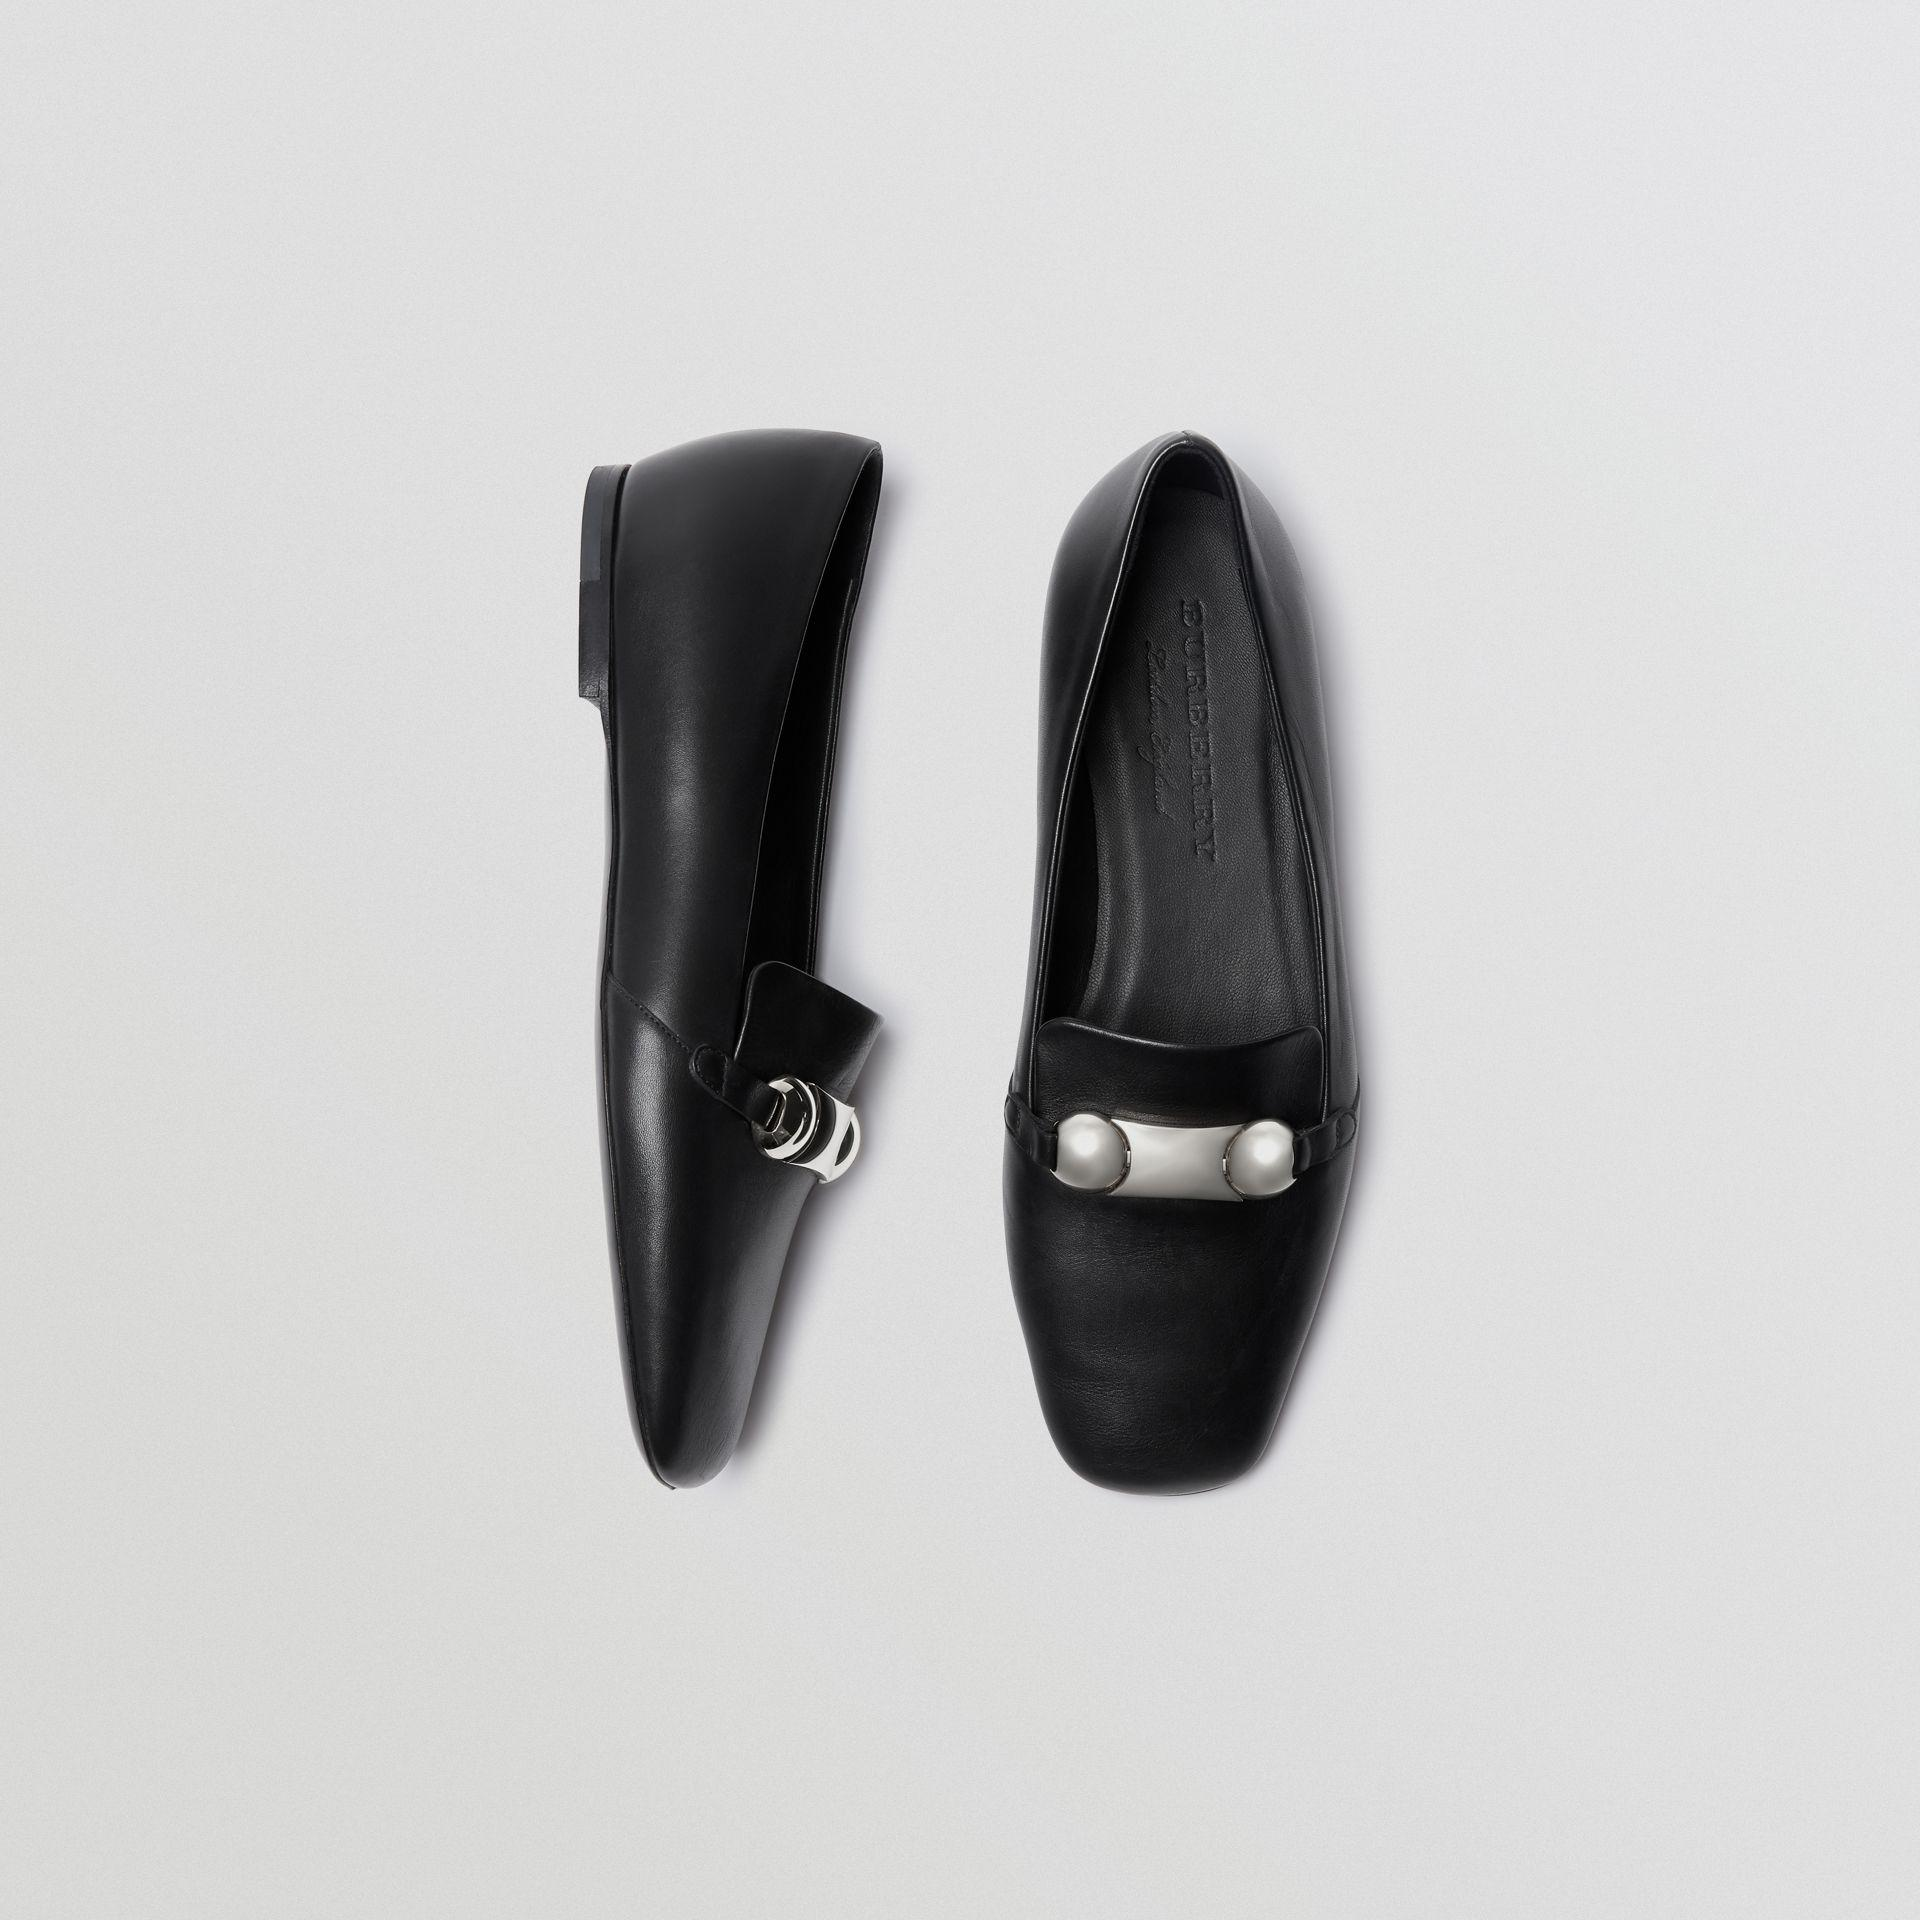 7b34c541977 Burberry Studded Bar Detail Leather Loafers in Black - Lyst